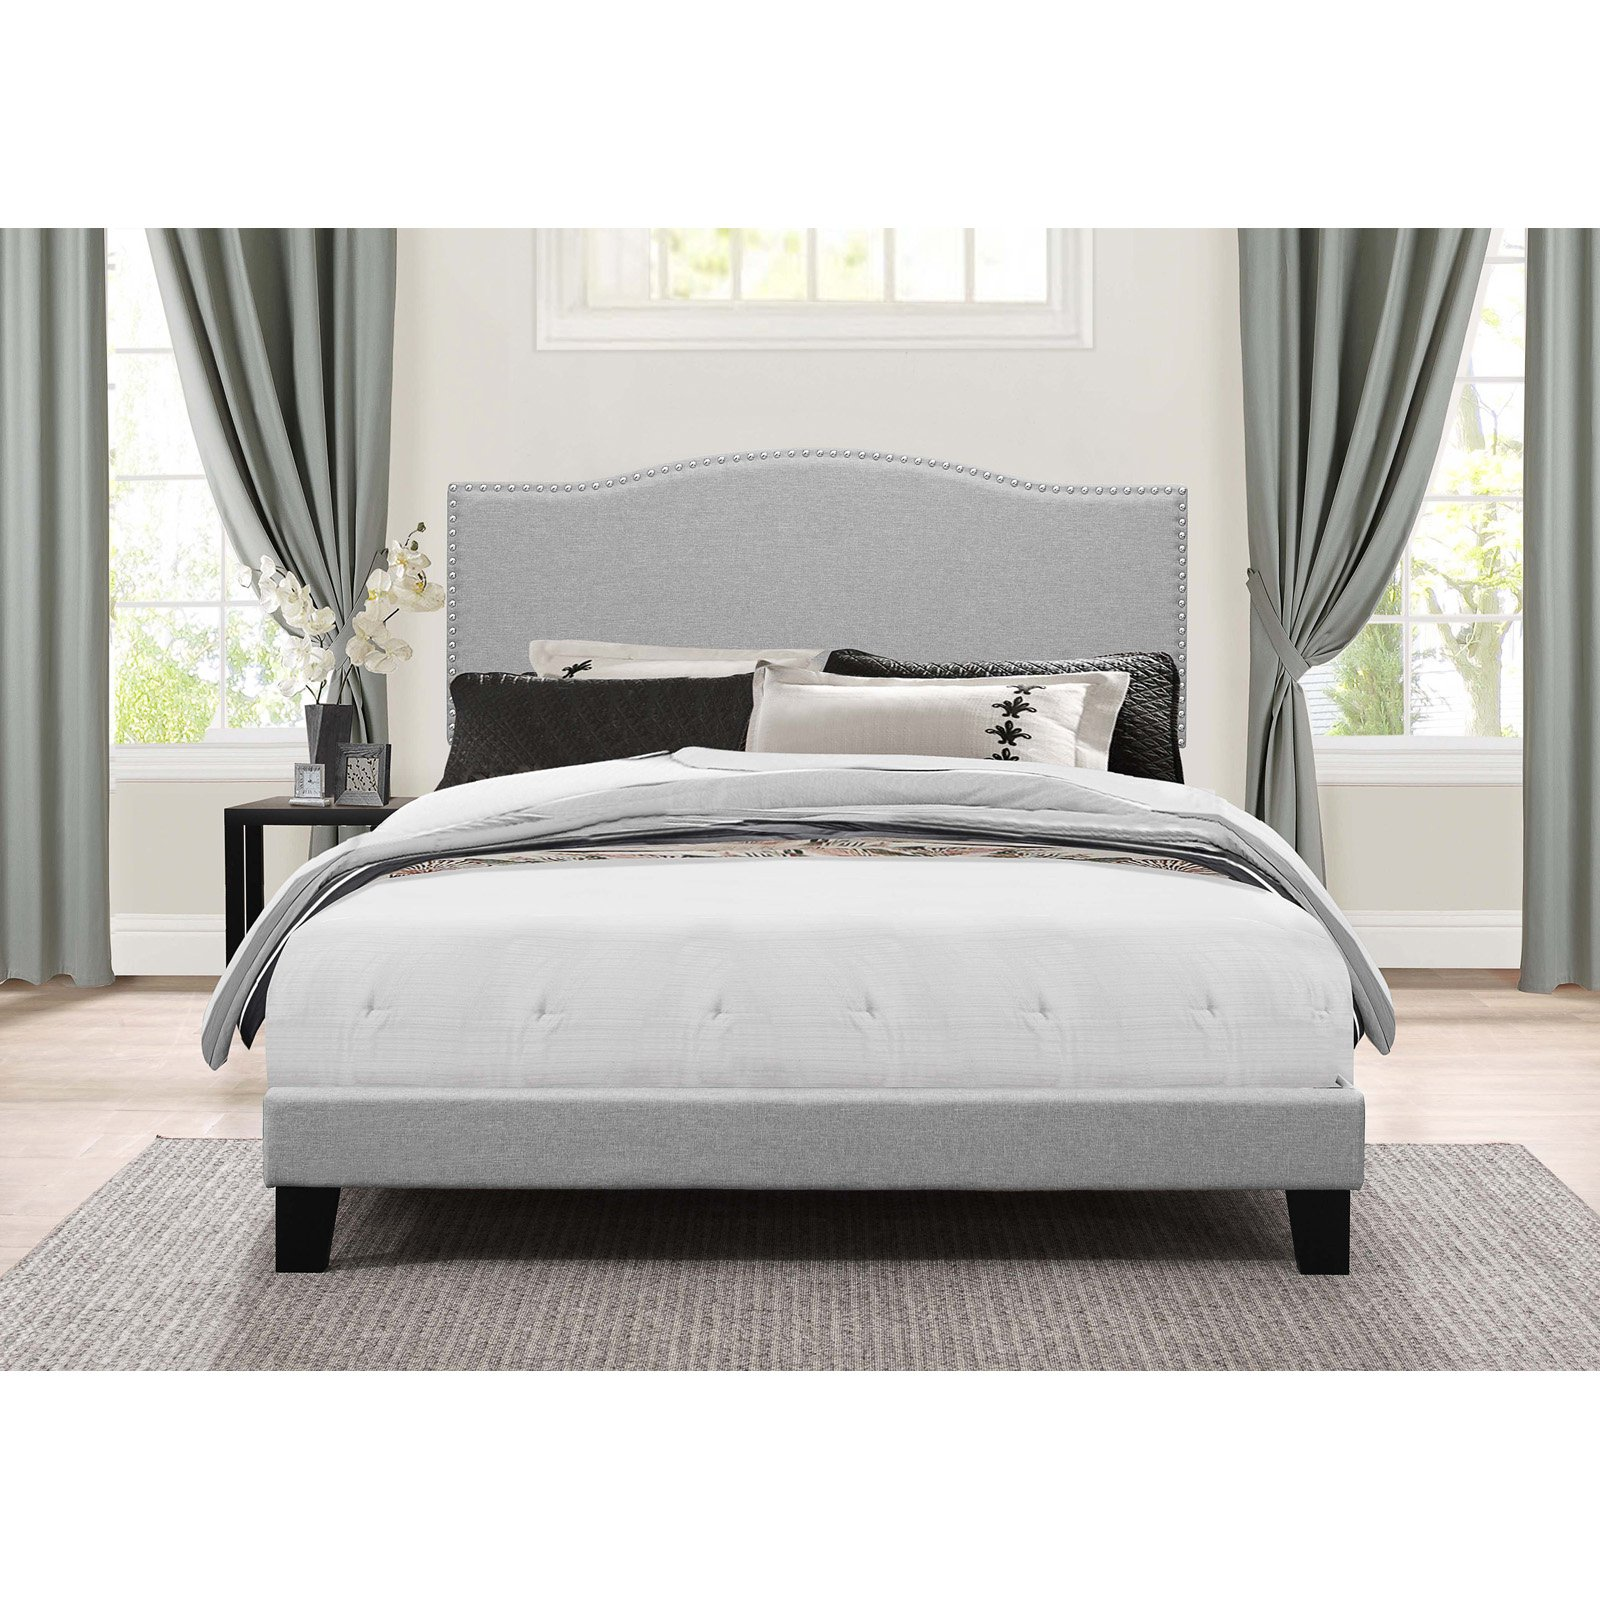 Hillsdale Furniture Kiley Full Bed, Glacier Gray